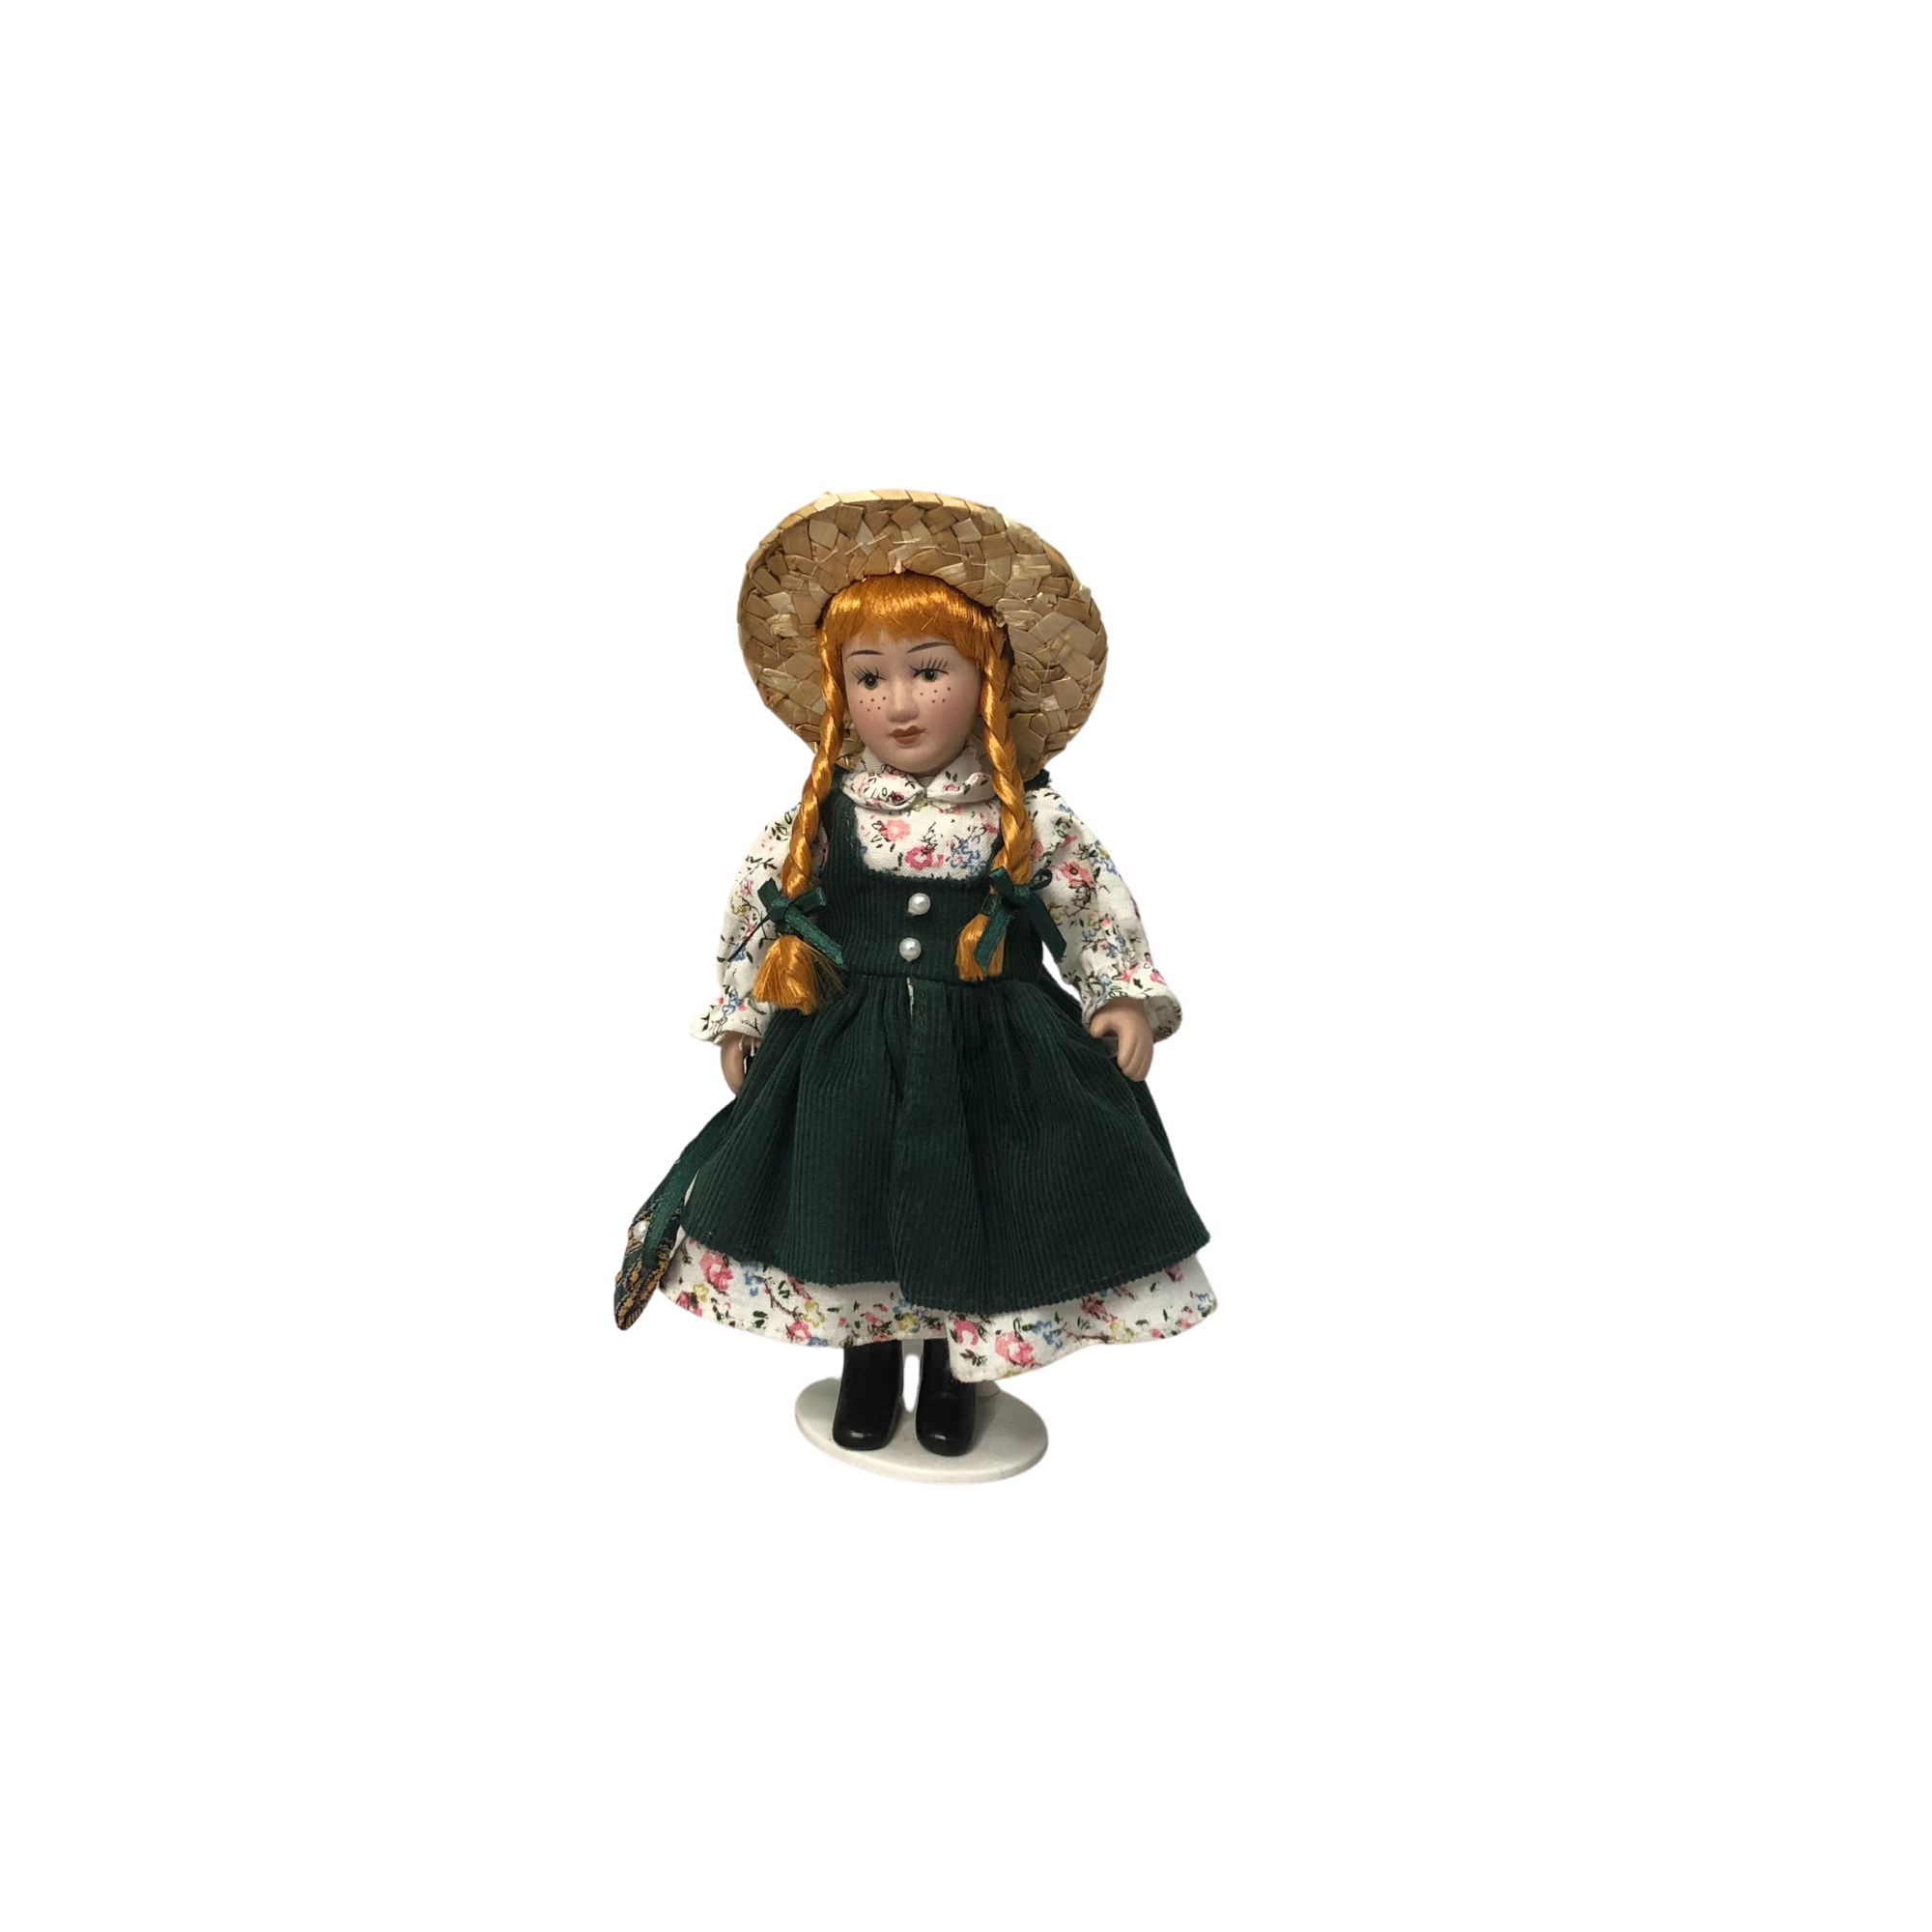 ANNE OF GREEN GABLES ALL PORCELAIN 6.5 INCH DOLL